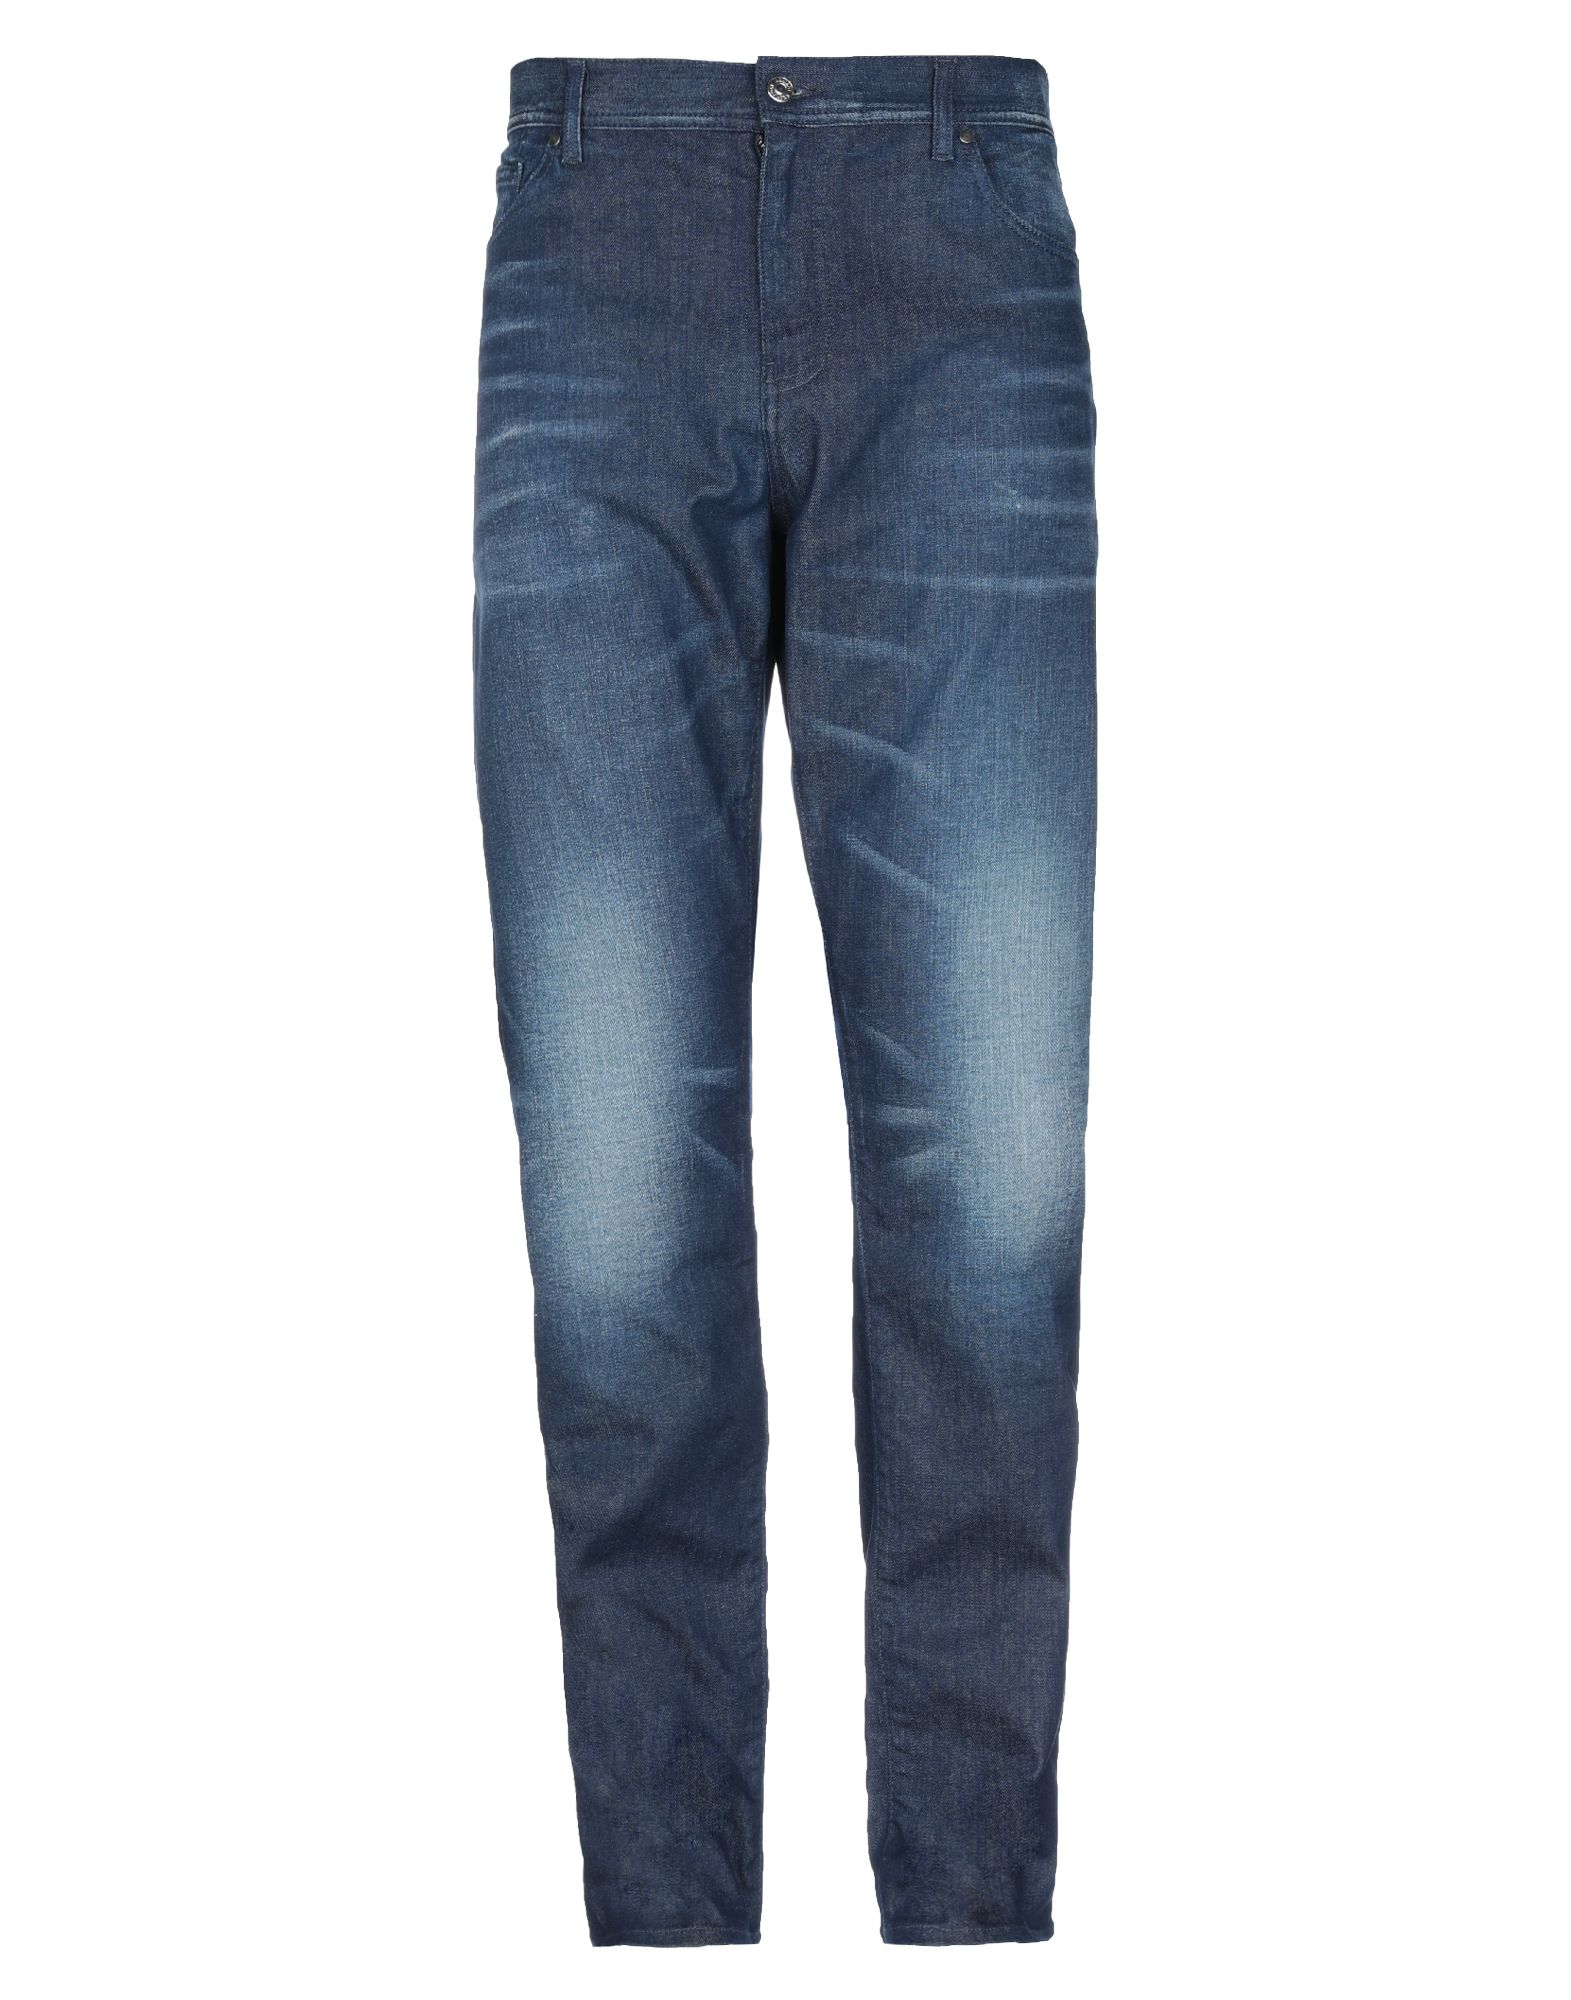 ARMANI EXCHANGE Denim pants - Item 42811506